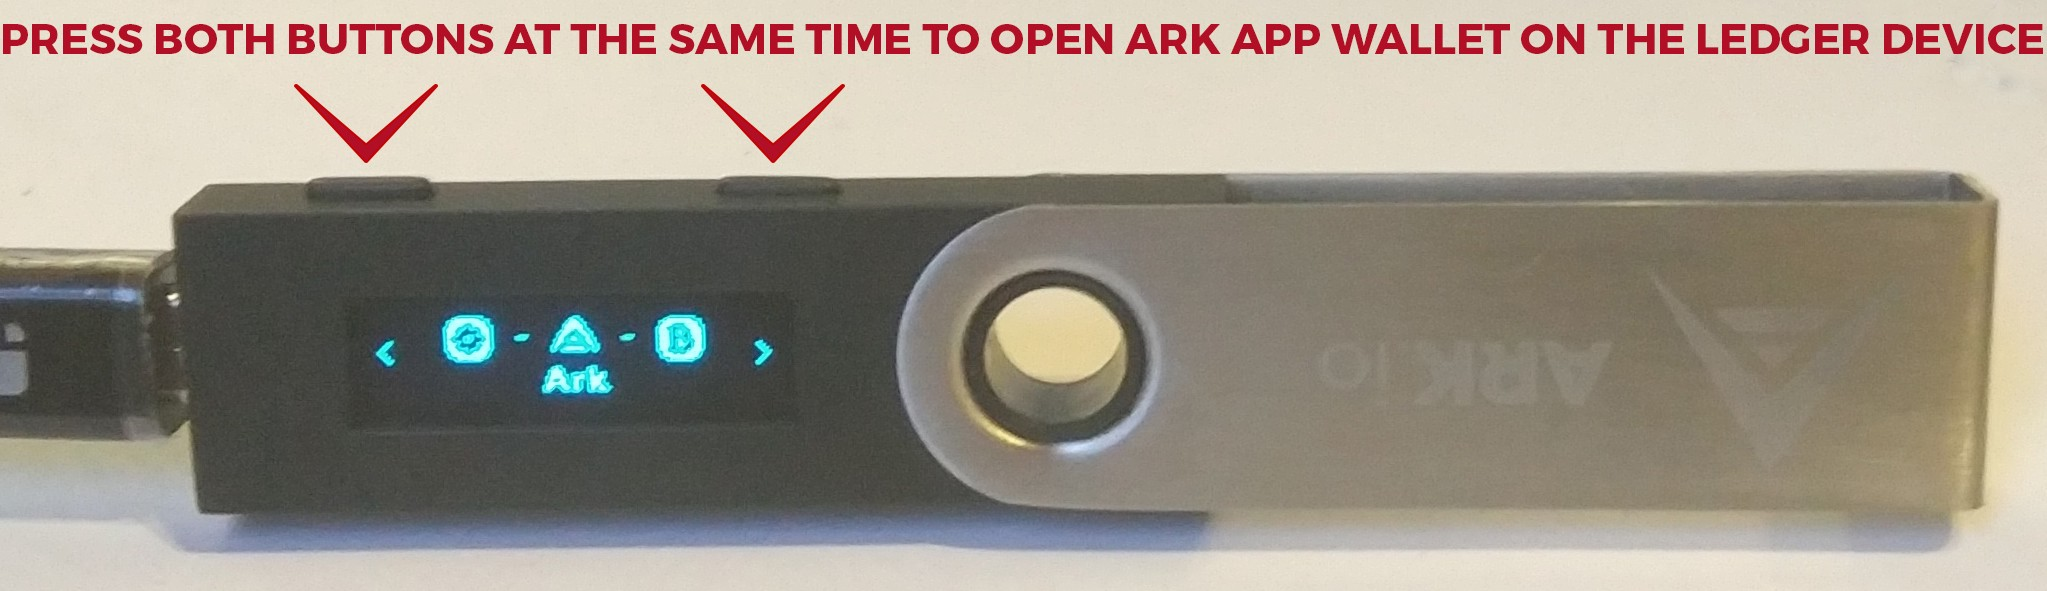 Everytime you will want to use ARK wallet you will need to open it on the Ledger device by pressing both buttons at the same time